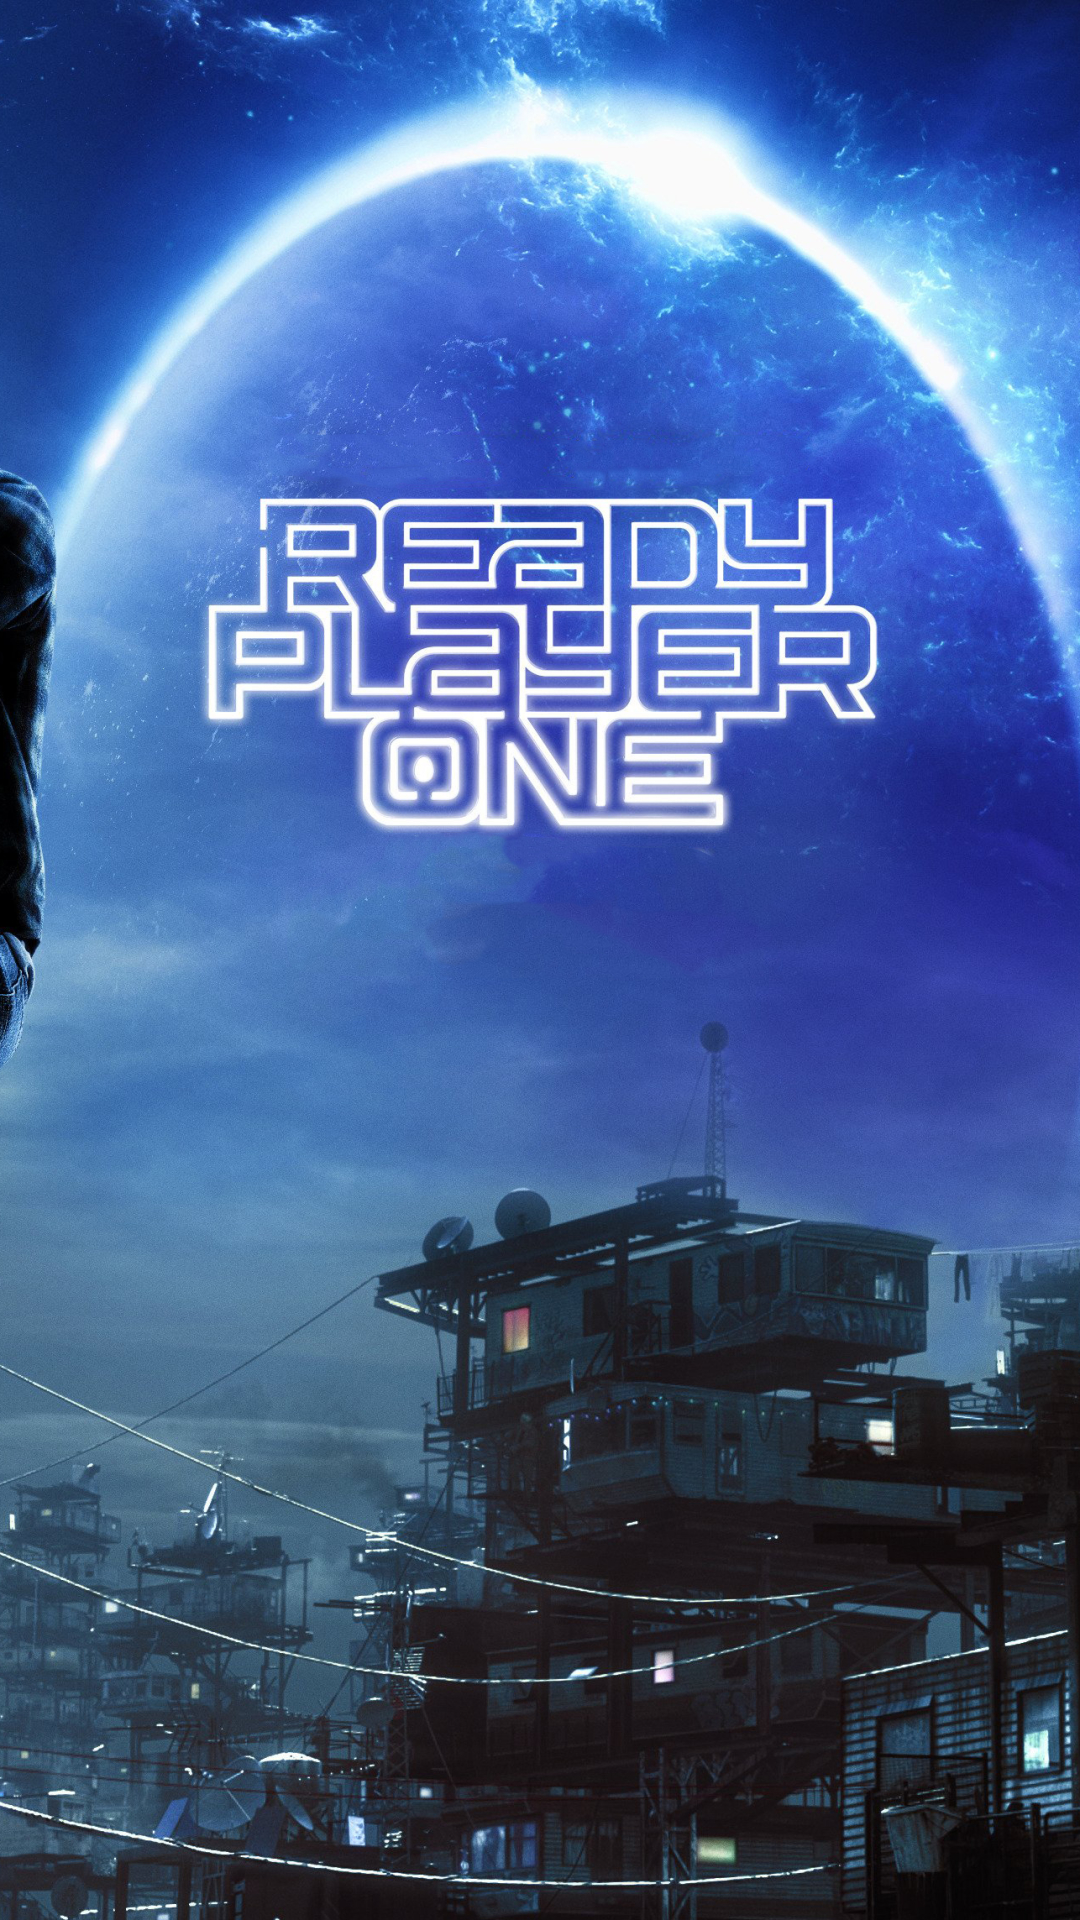 MovieReady Player One x Wallpaper ID  Mobile